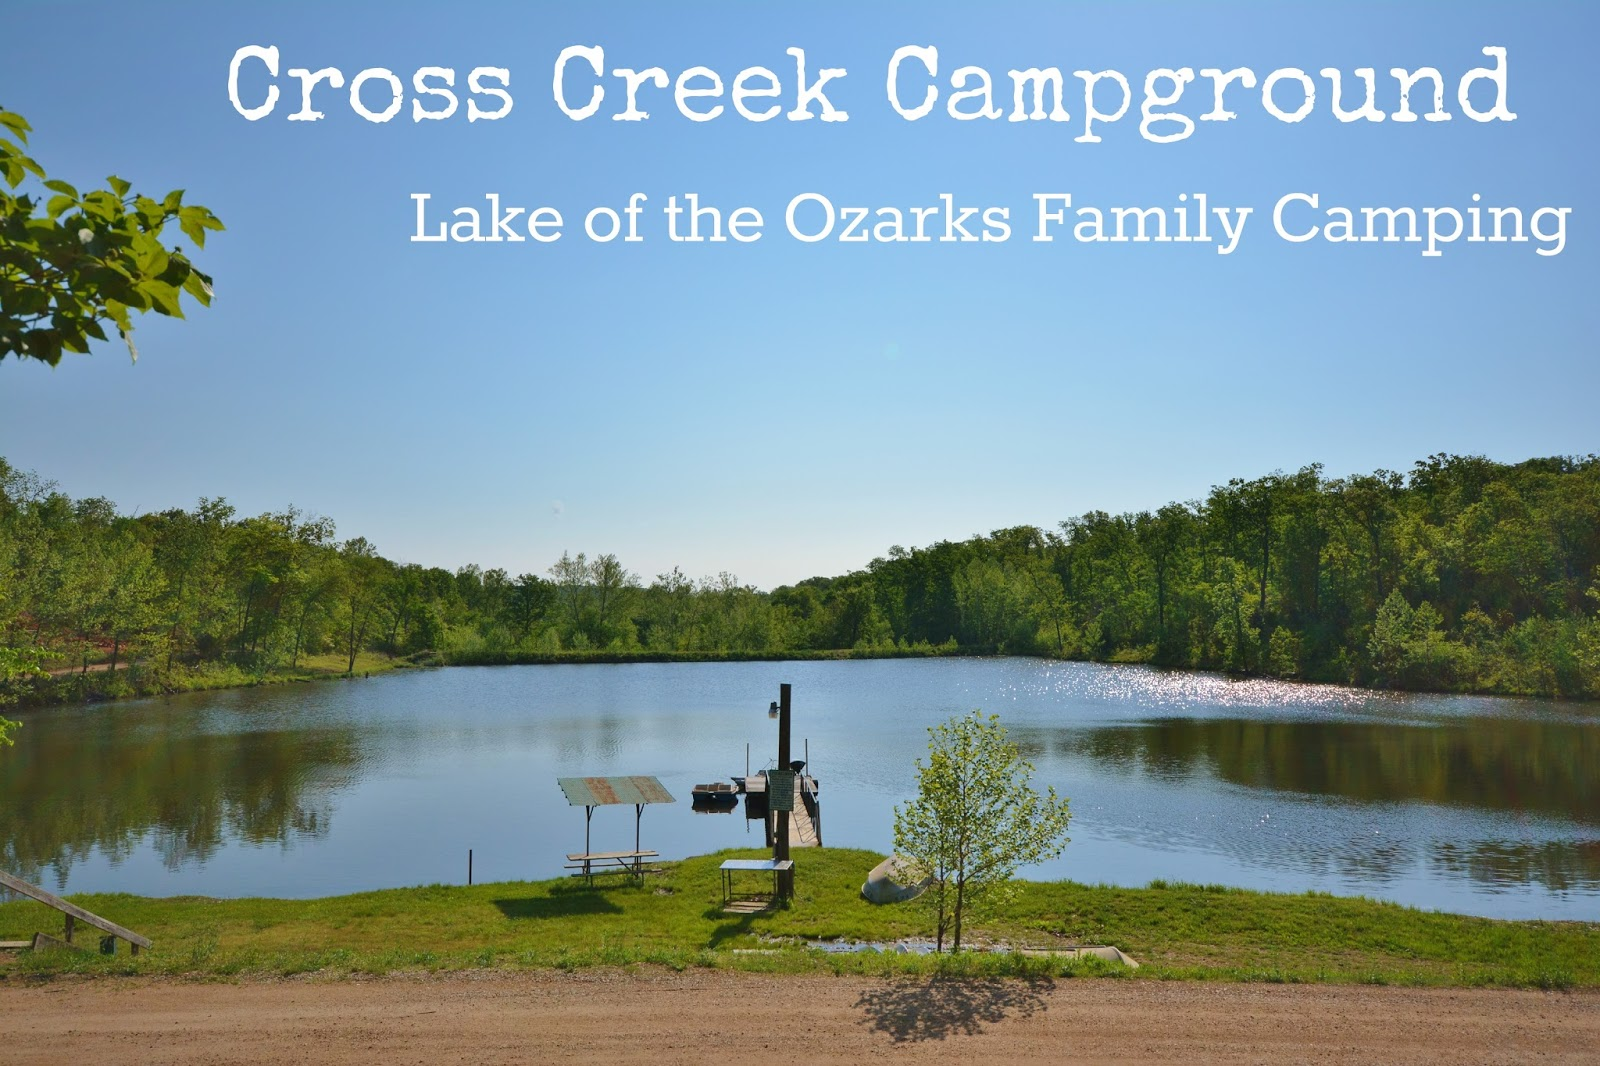 Cross Creek Campground is a great full service #camping location in Lake of the Ozarks, with loads of activities for kids. #familycamping #travel #70DayRoadTrip